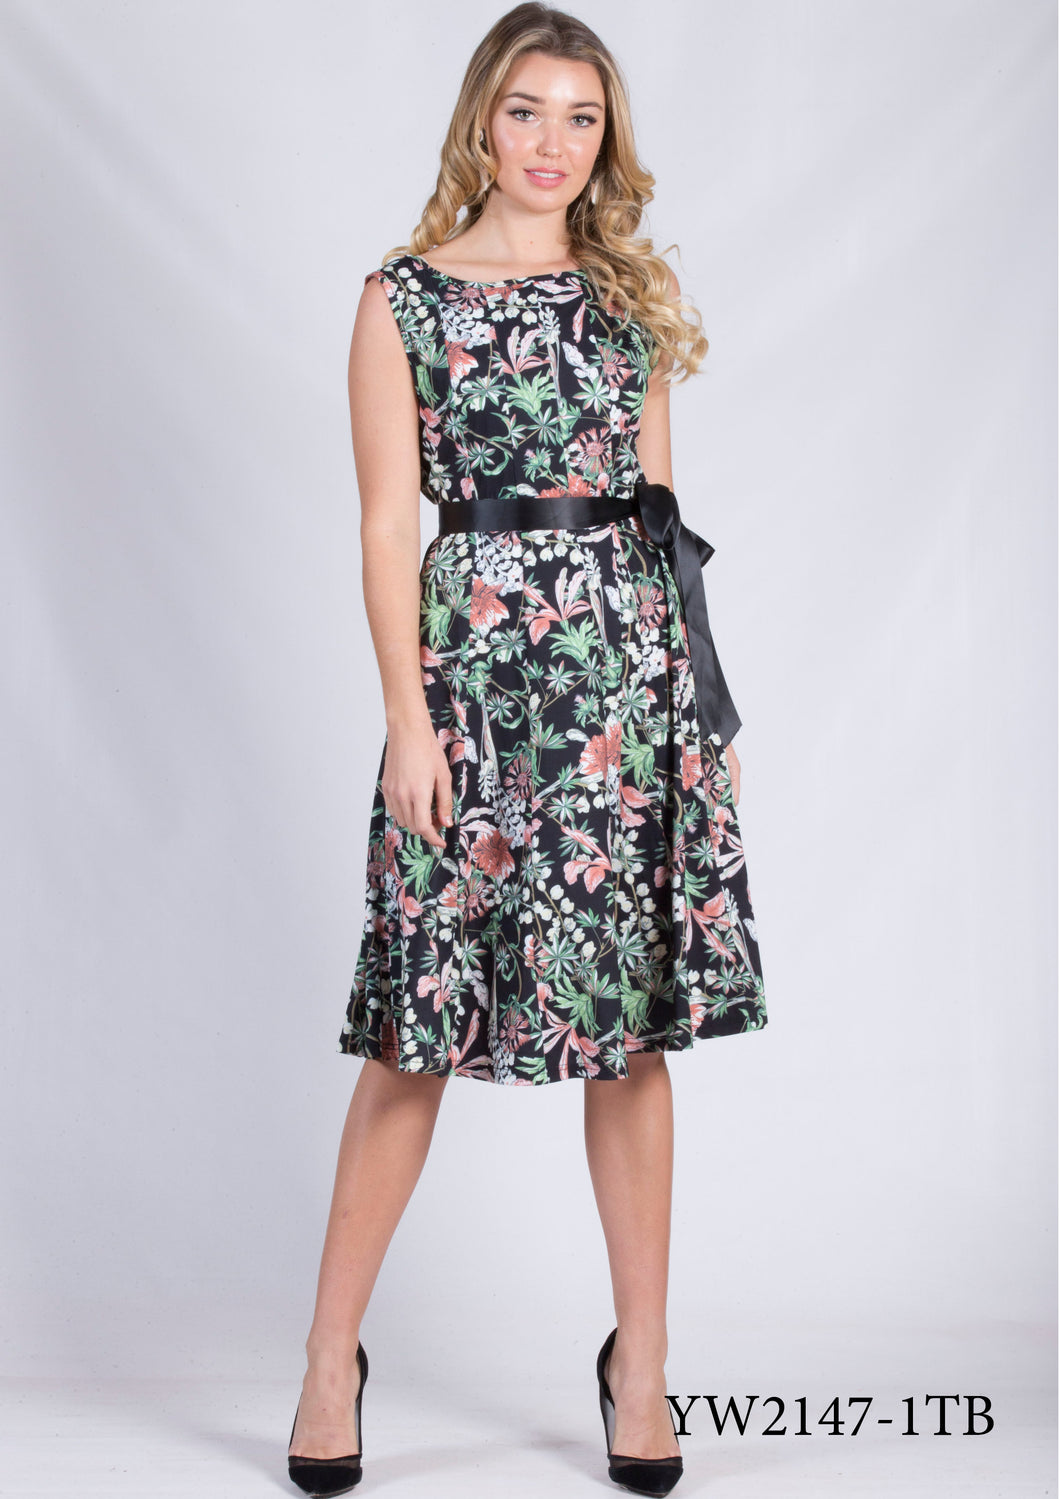 YW2147-1TB Capped Sleeved Floral Dress (Pack)